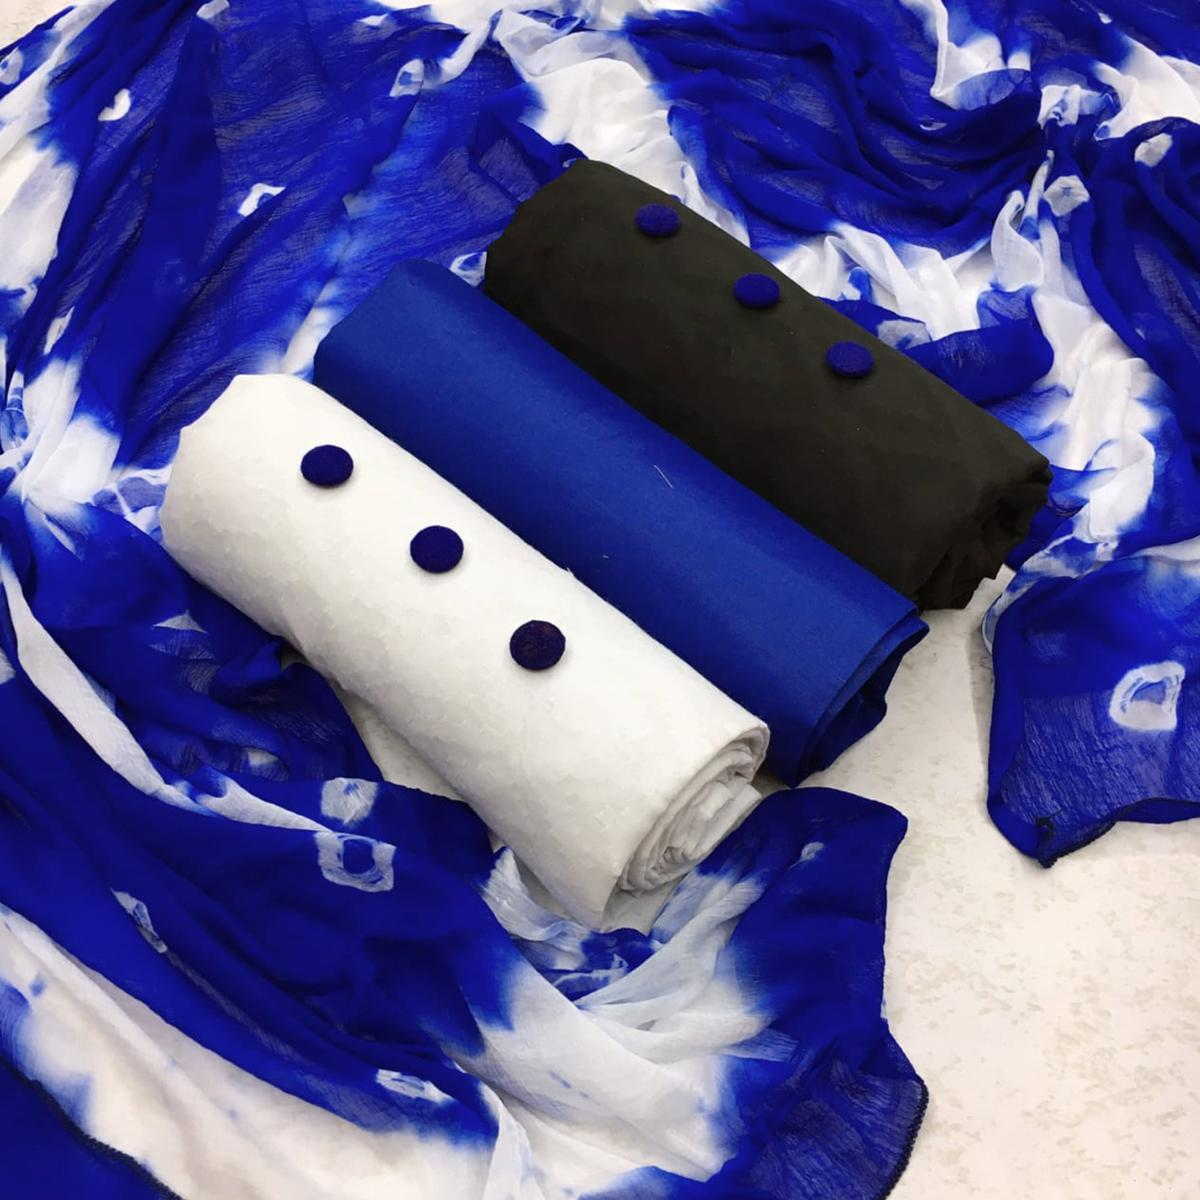 Classy Royal Blue - White - Black Colored Partywear Printed Double Top Cotton Dress Material